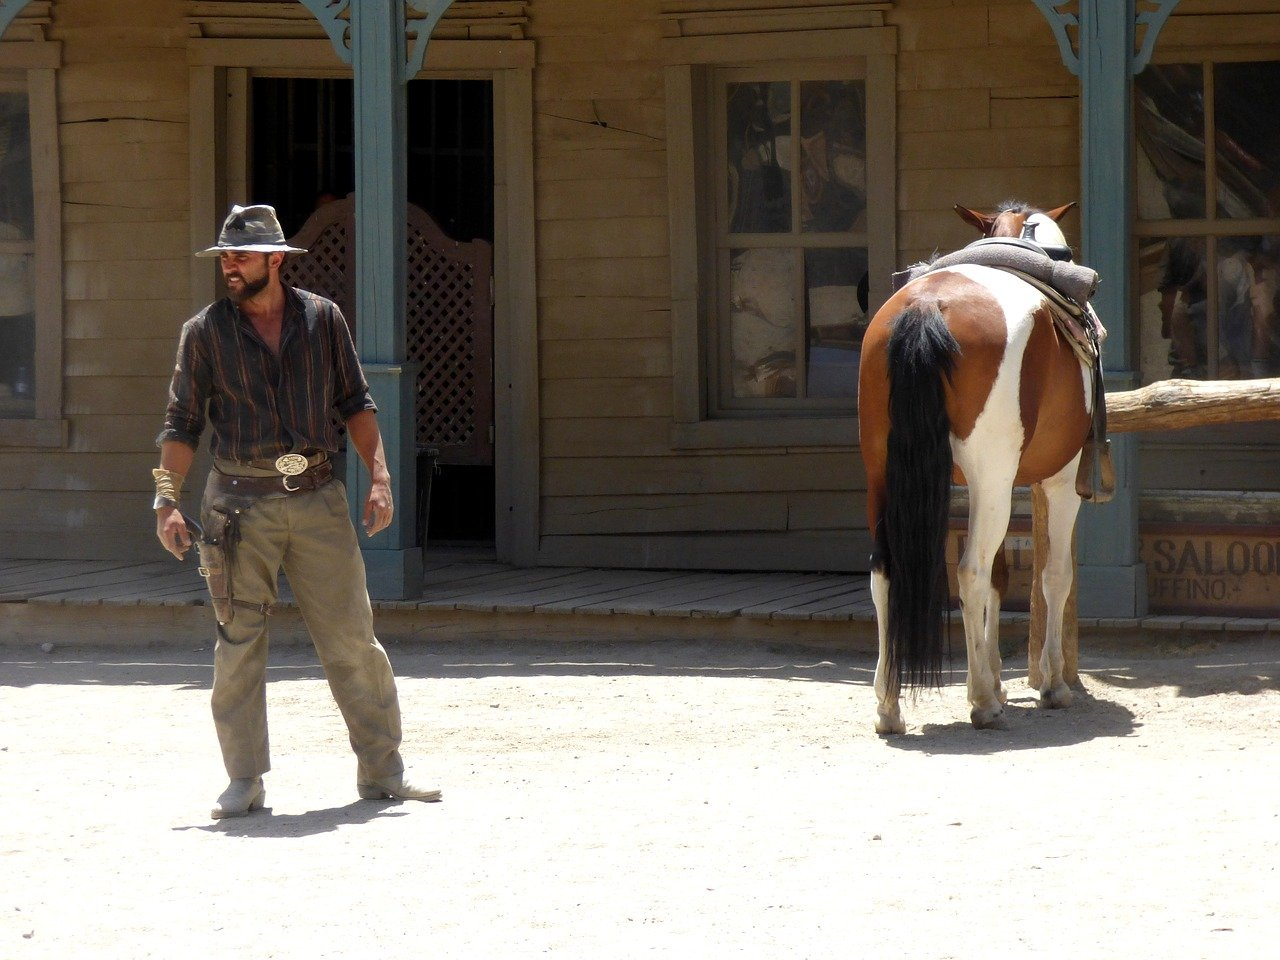 A cowboy looking confused as he looks around with a horse close by   Photo: Pixabay